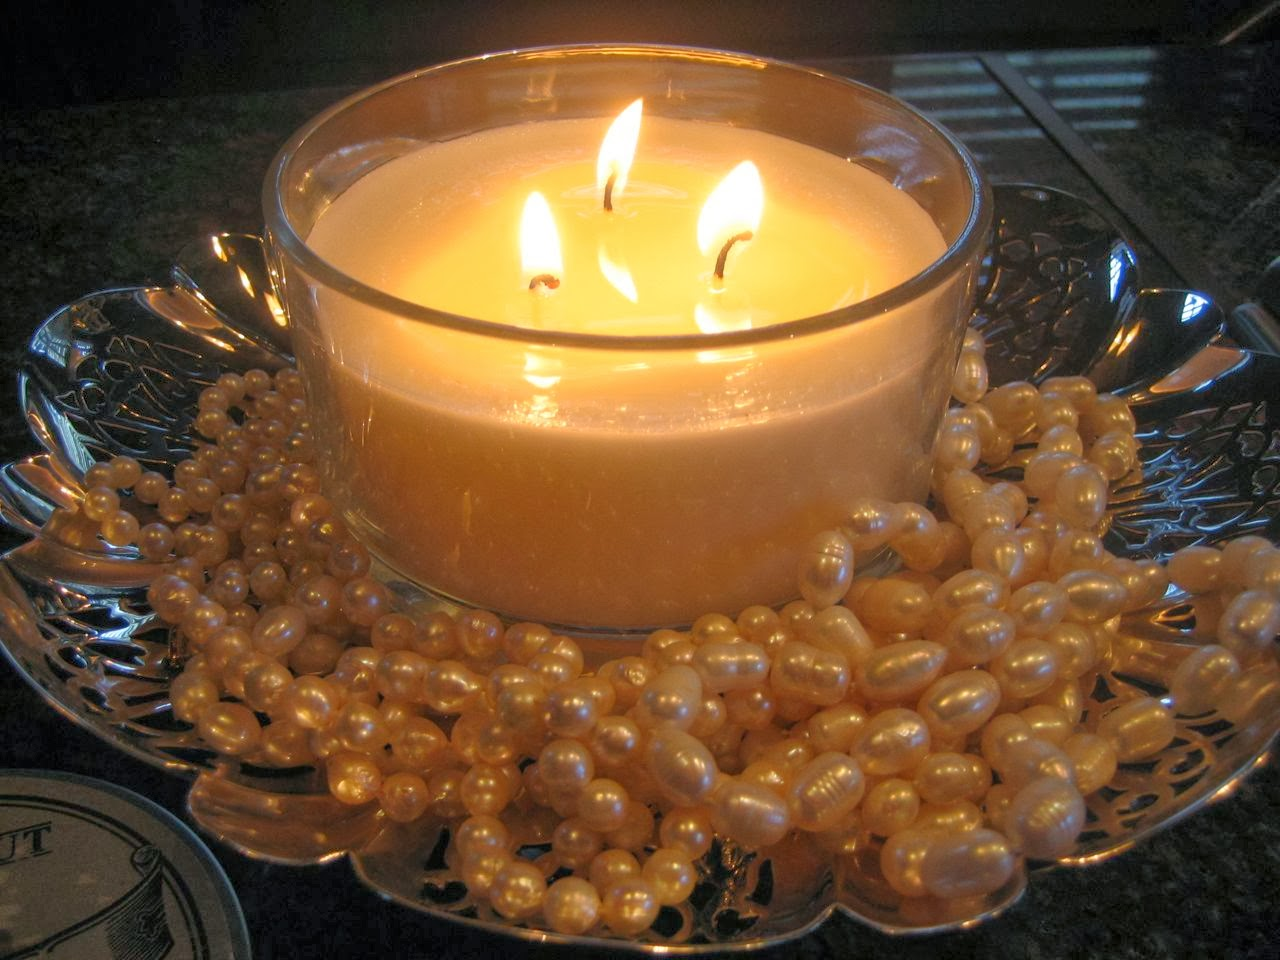 Light up your face by wearing some pearls...they look great anytime, day or night!